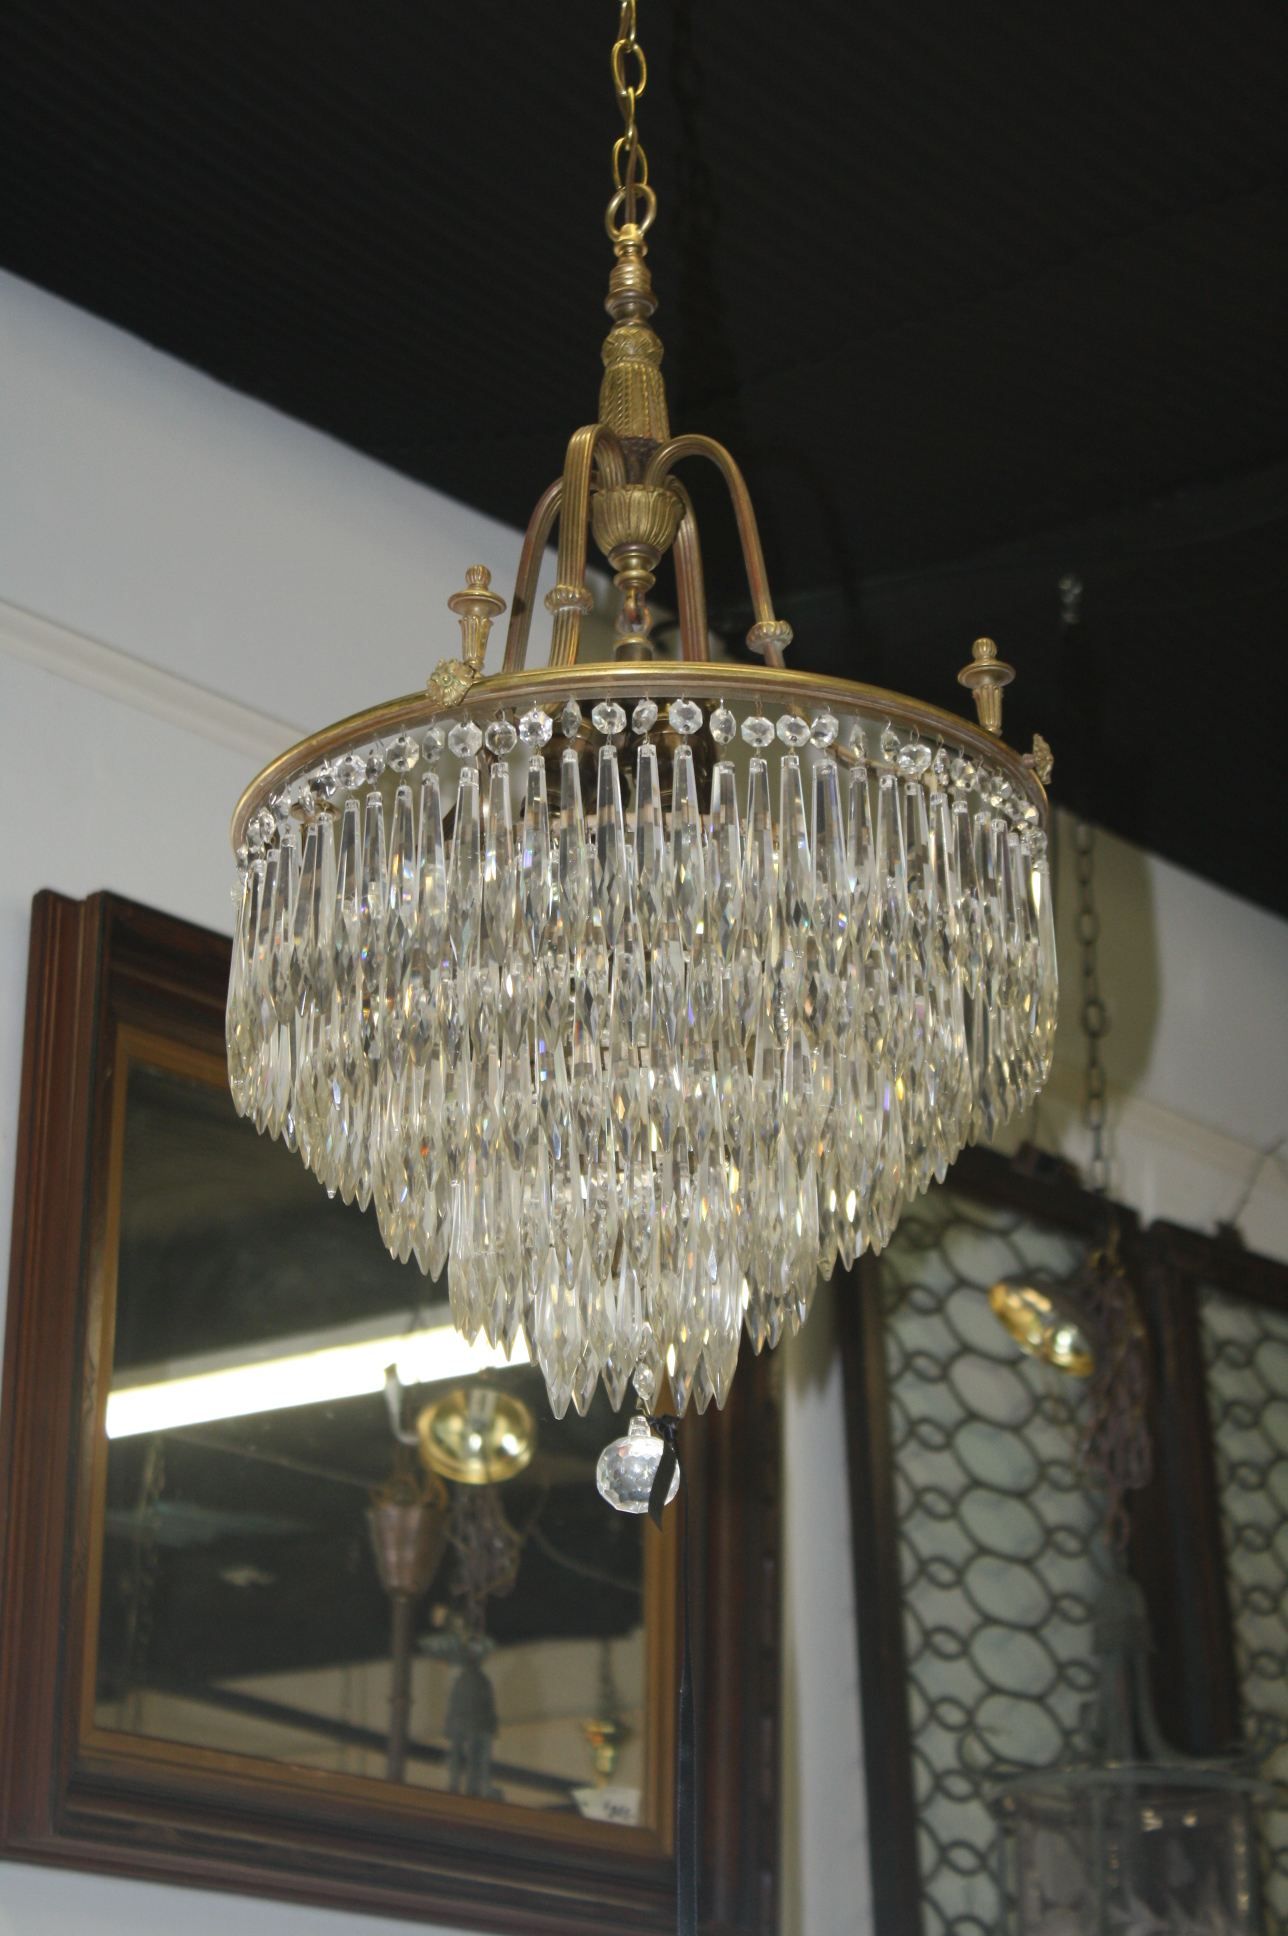 Antique Lead Crystal Chandeliers Chandelier Designs - Antique Lead Crystal  Chandelier - Chandelier Designs - Antique Crystal Chandeliers For Sale Antique Furniture